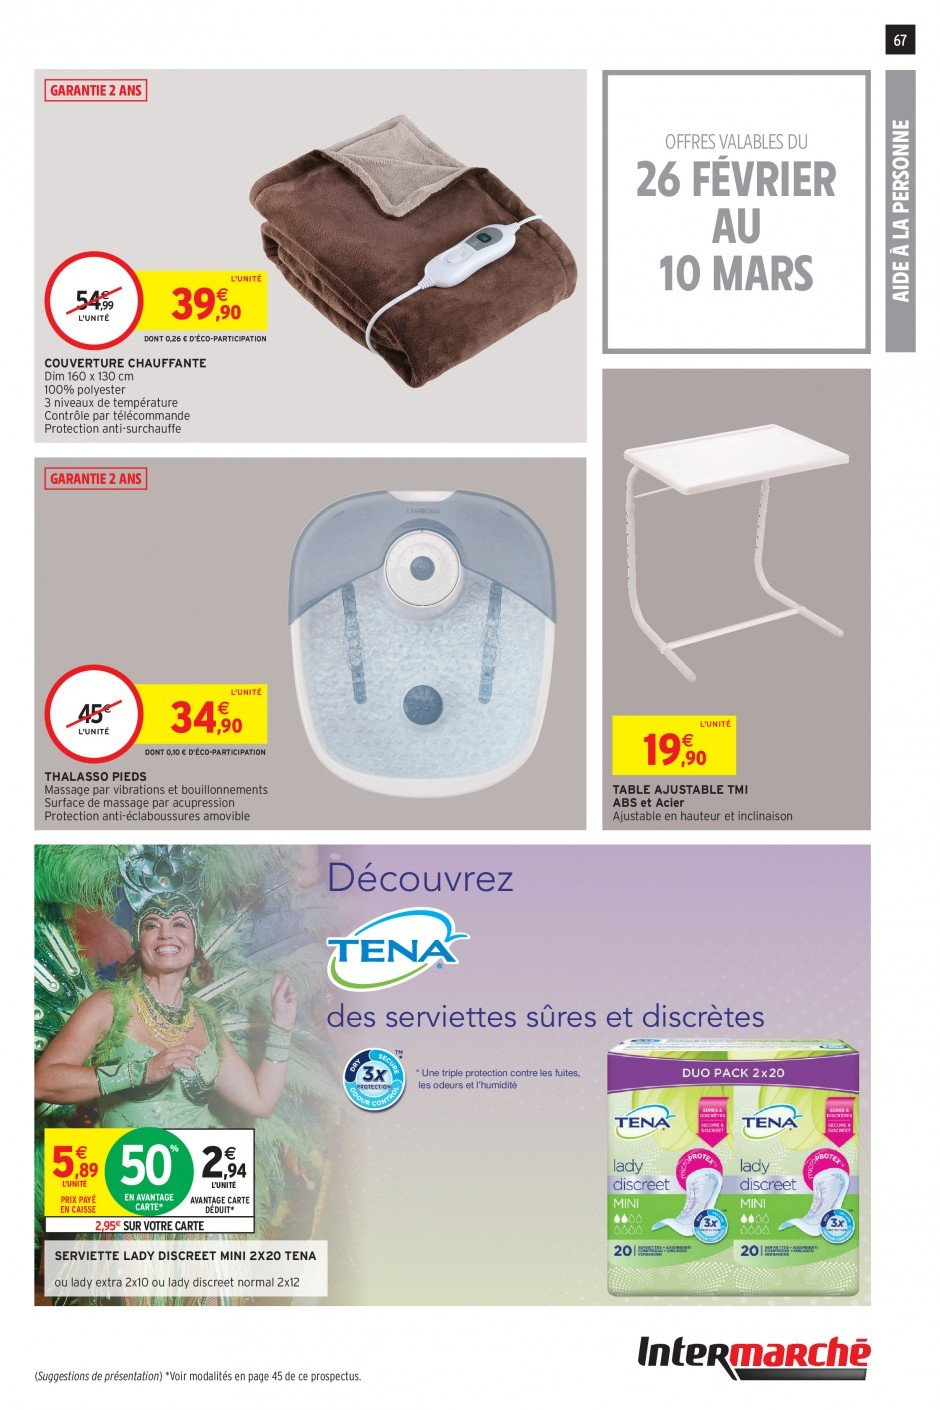 Catalogue Intermarché - 26.02.2019 - 03.03.2019. Page 65.